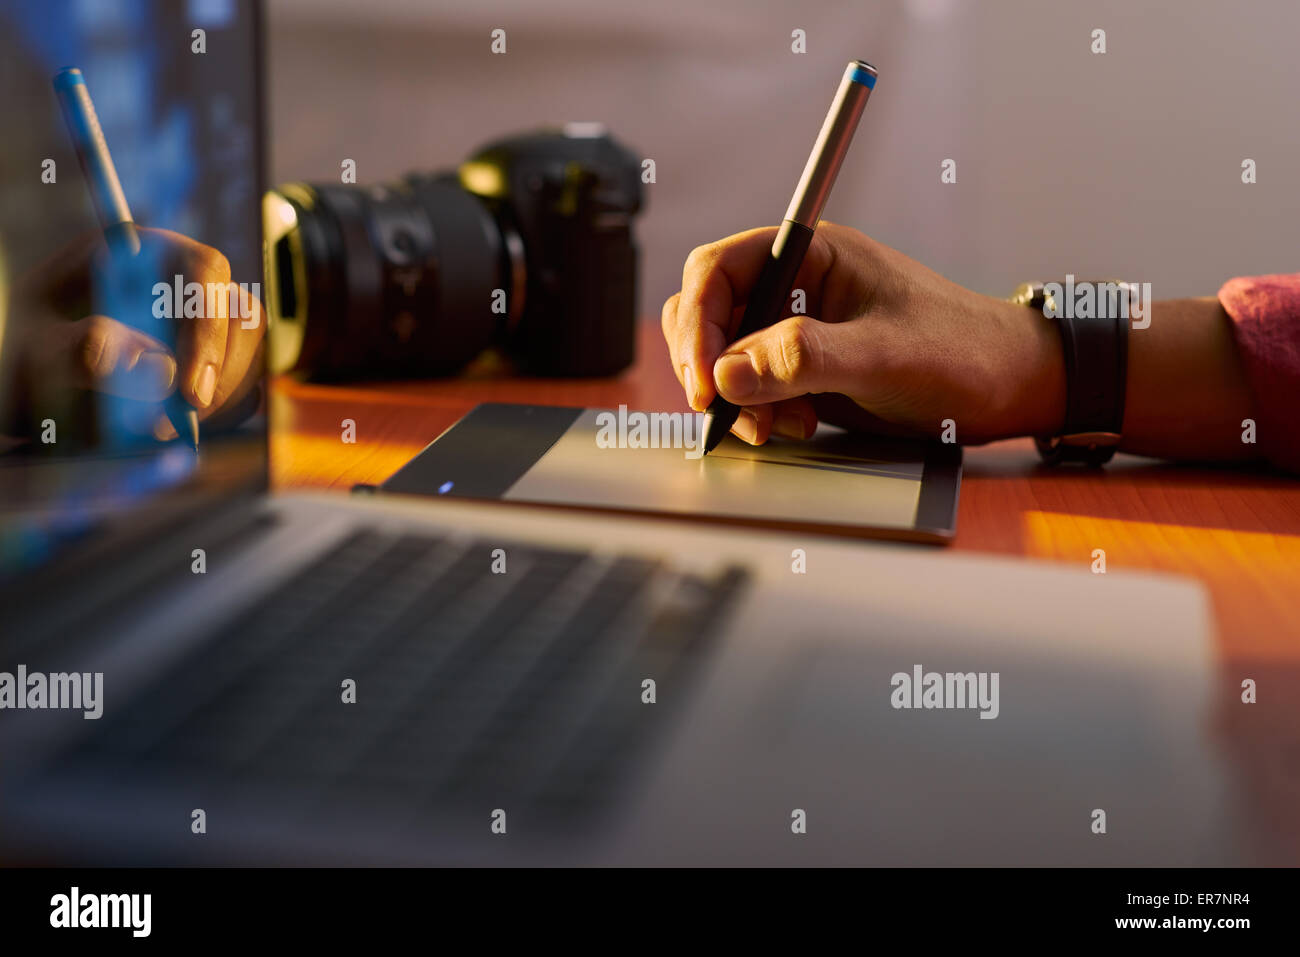 Photographer drawing and retouching image on laptop computer, using a digital tablet and stylus pen. Closeup of Stock Photo